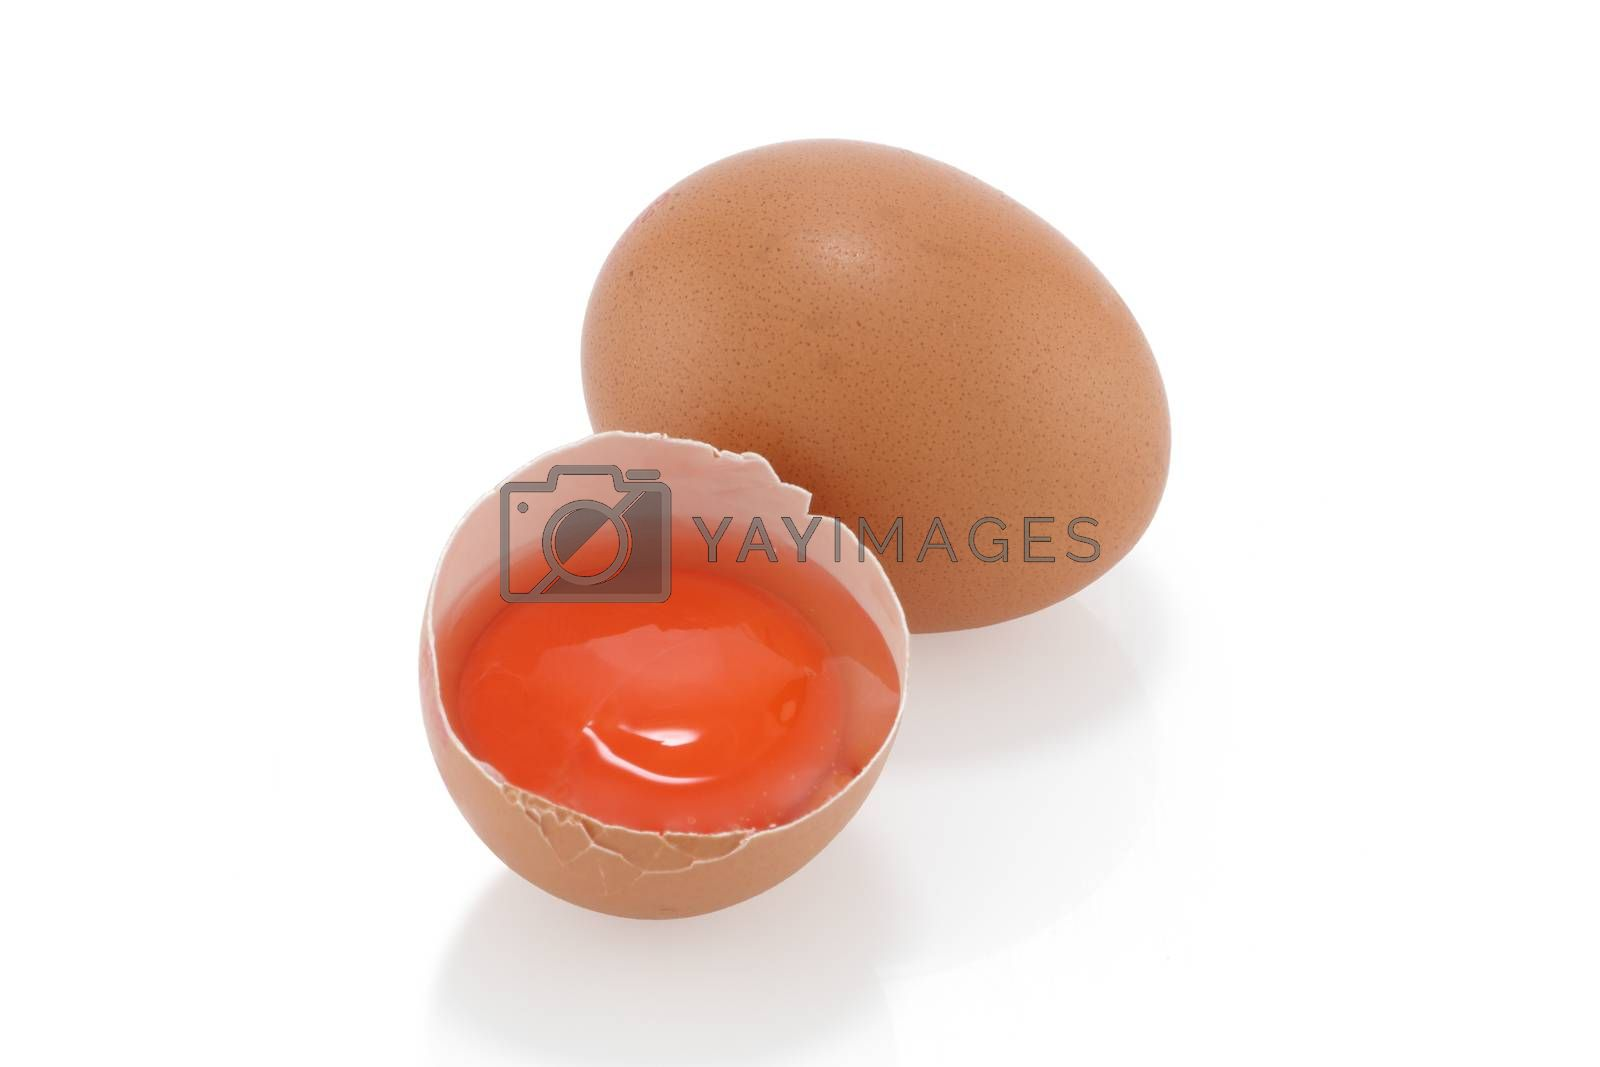 An egg and yolk on a white background